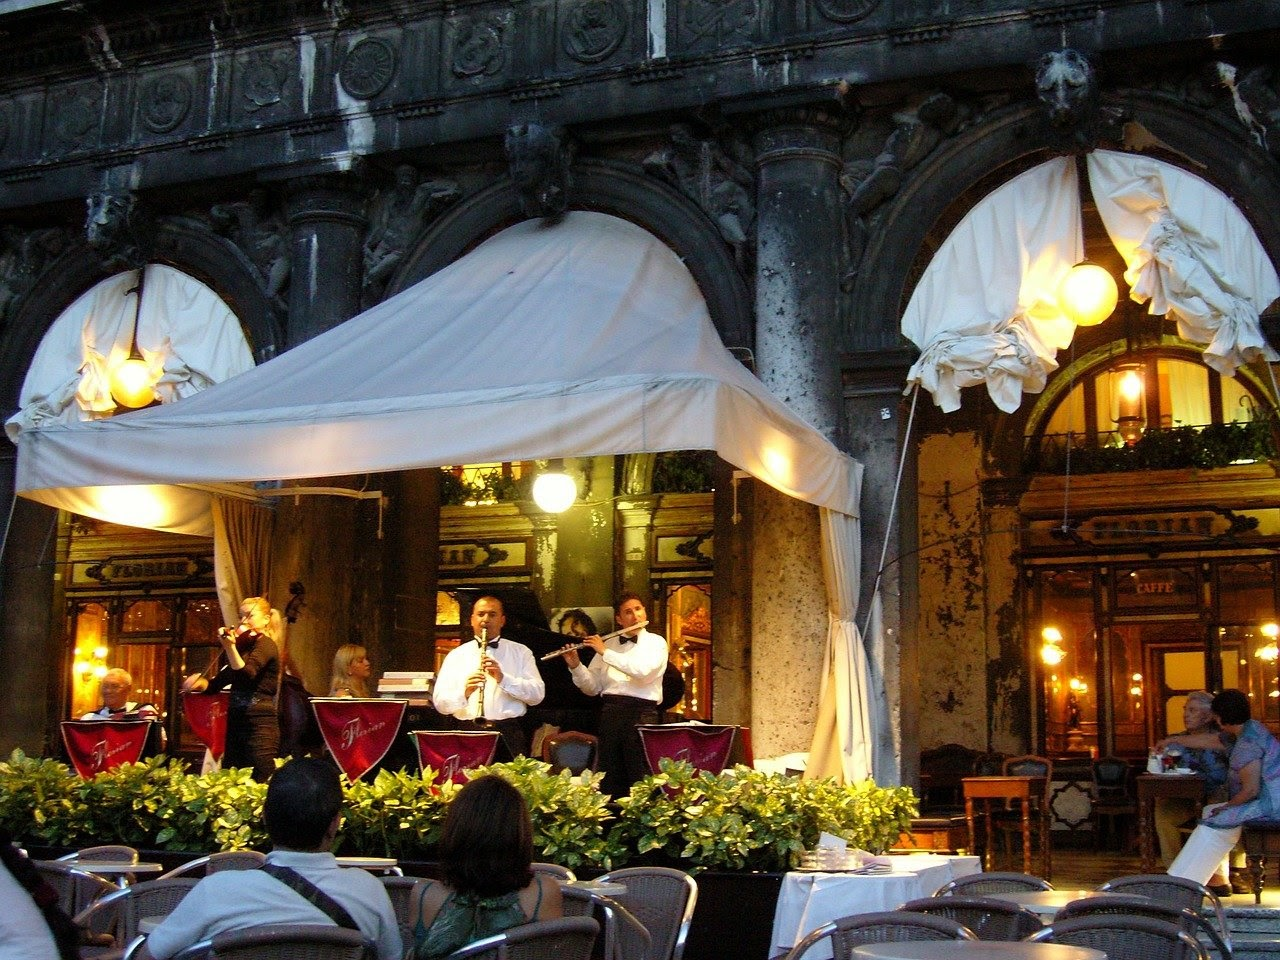 A group of classical musicians markets their group by performing live at a nice restaurant.